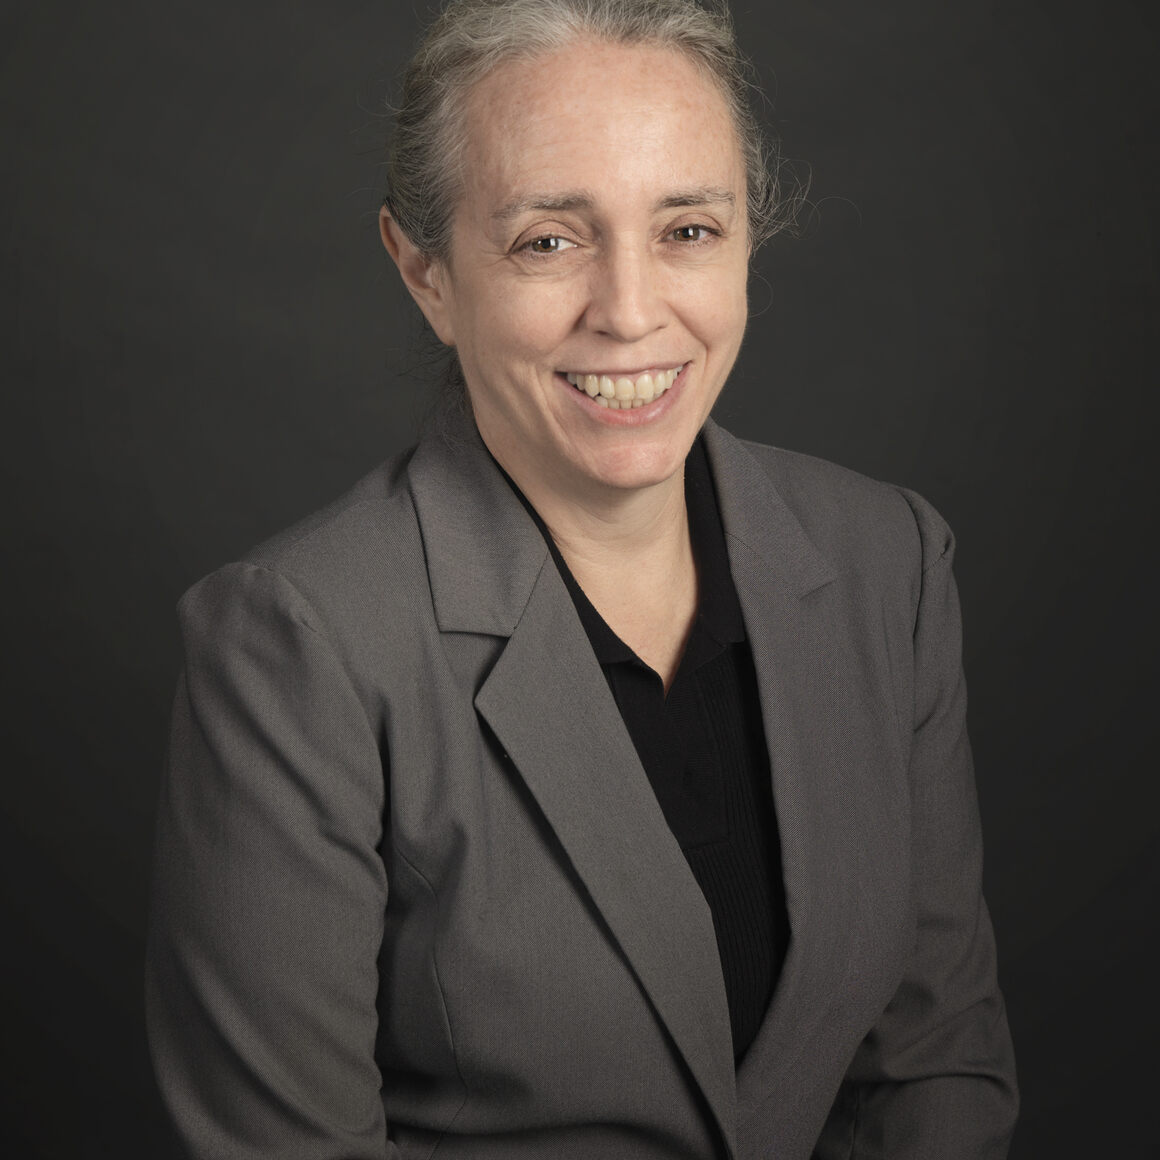 Dr. Sarah Henry, Chief Curator and Deputy Director of the Museum of the City of New York